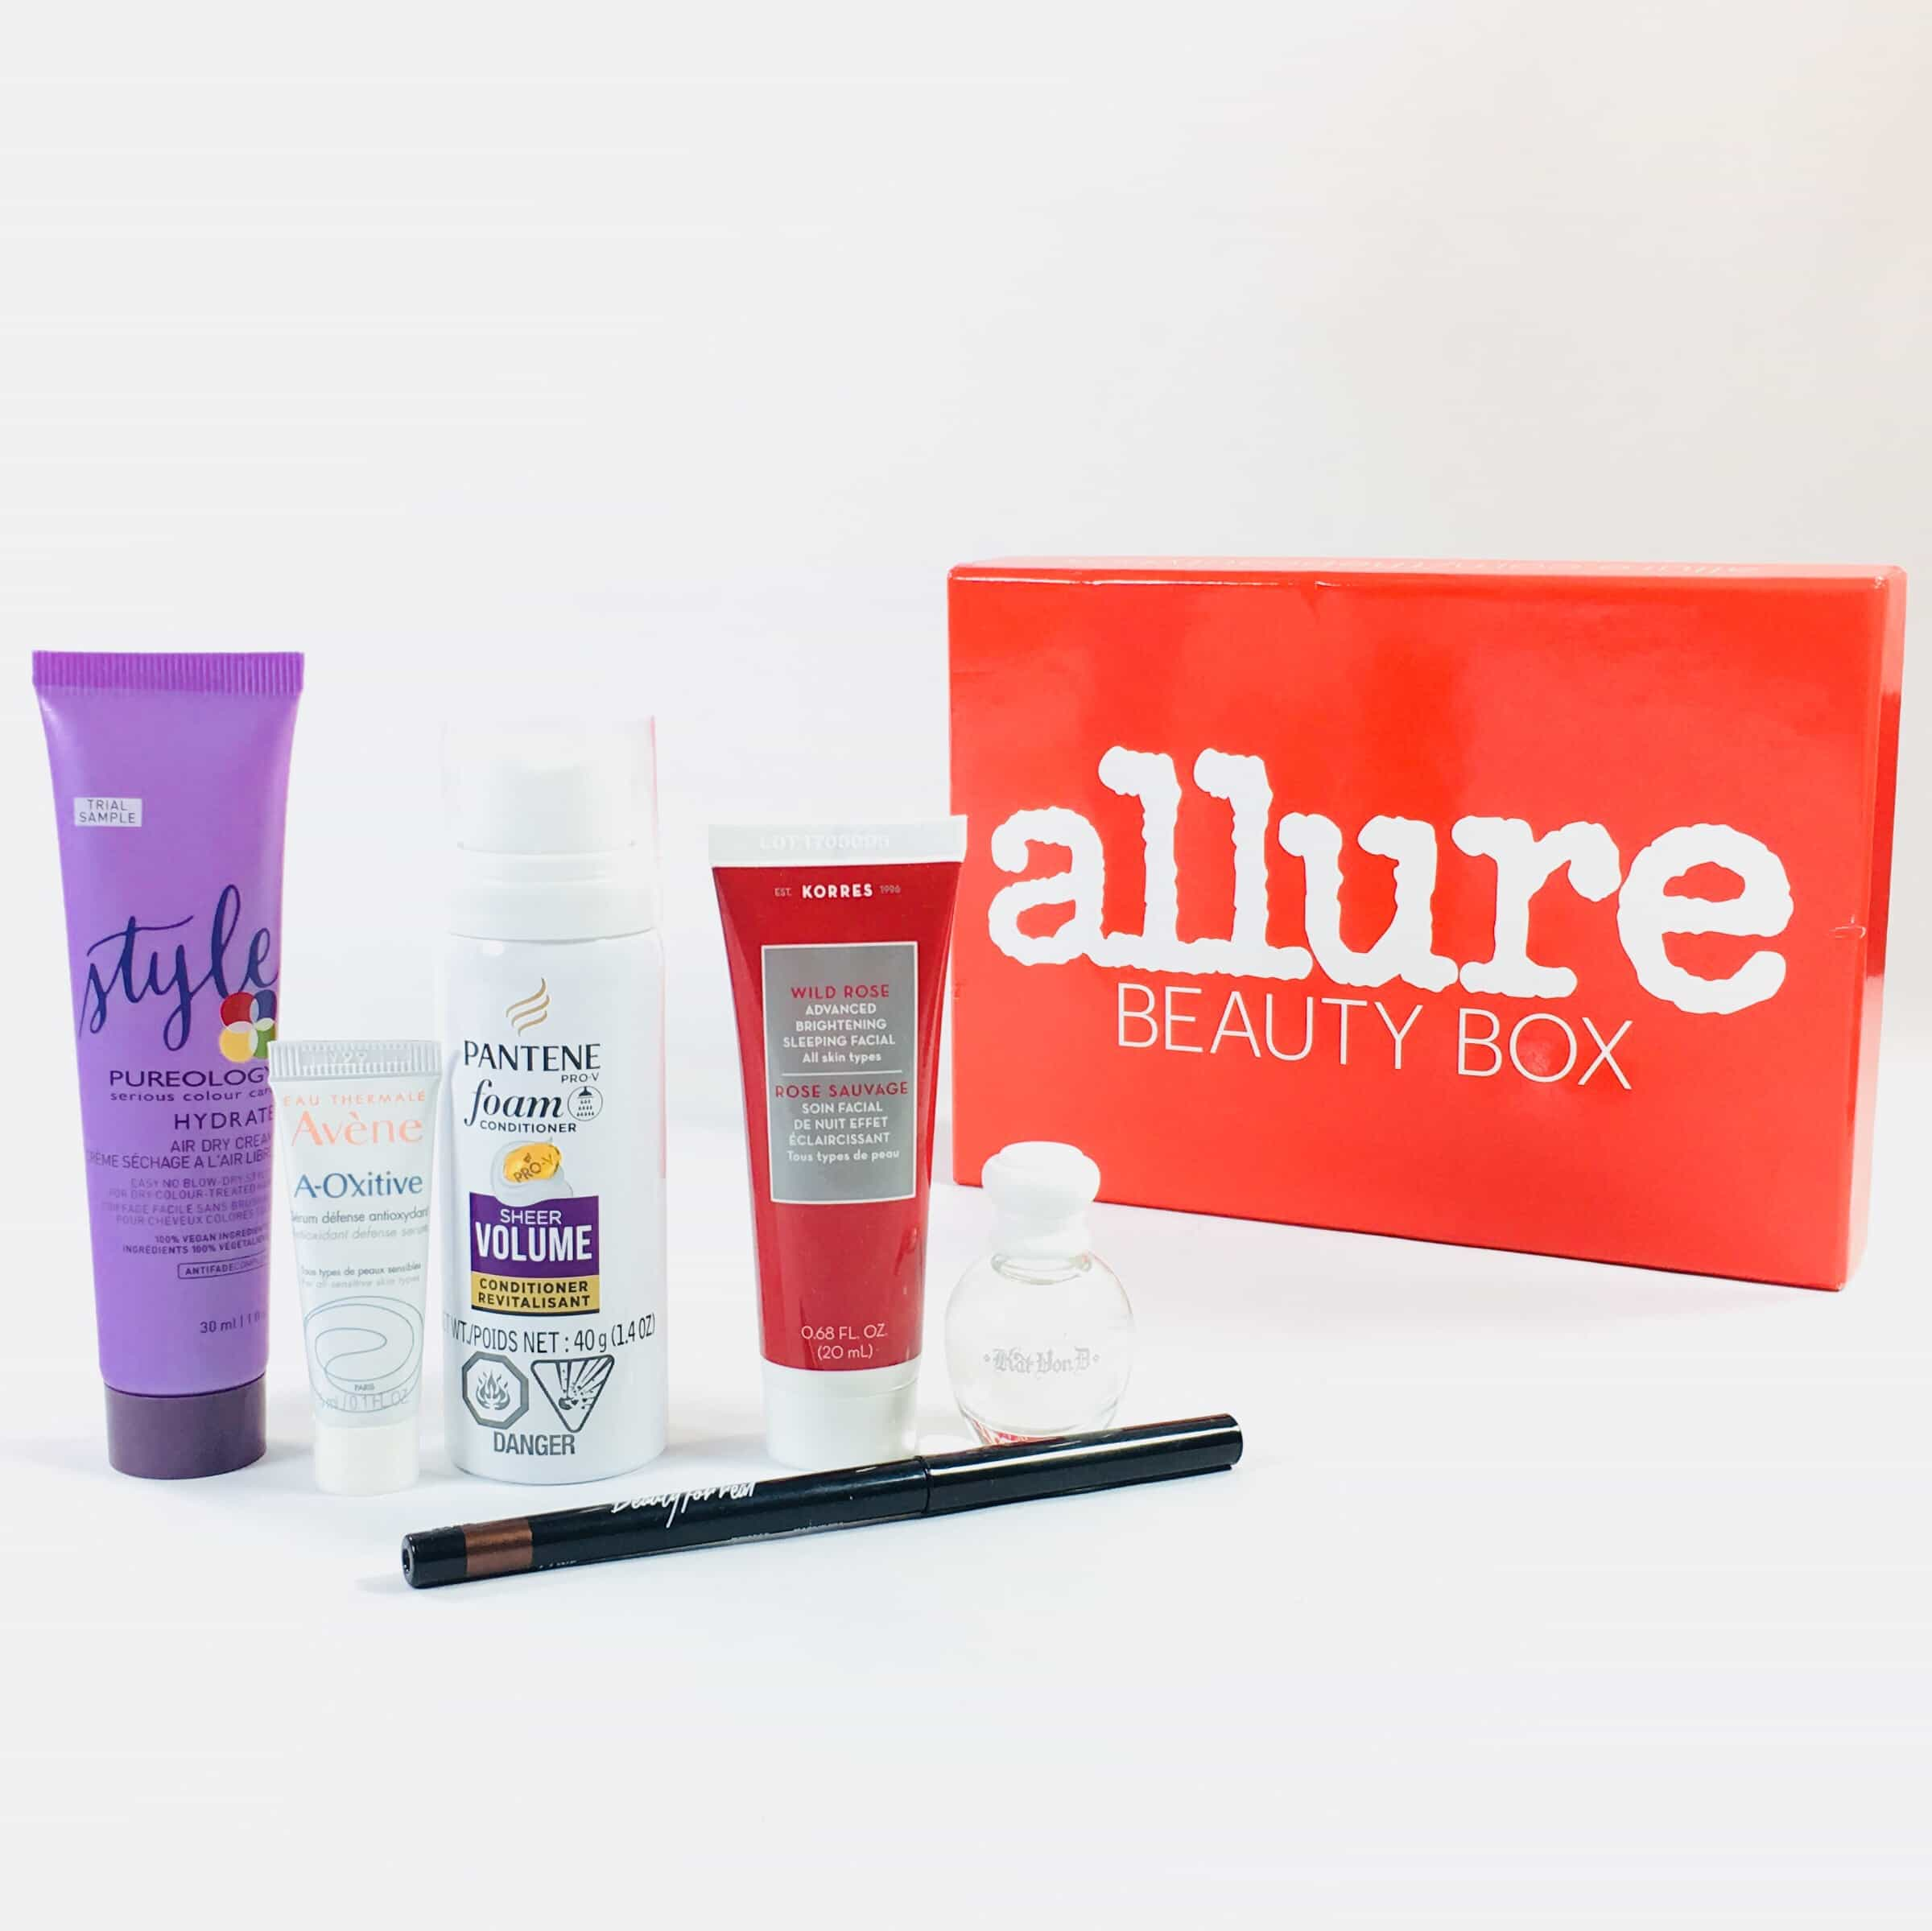 Allure Beauty Box October 2017 Subscription Box Review & Coupon